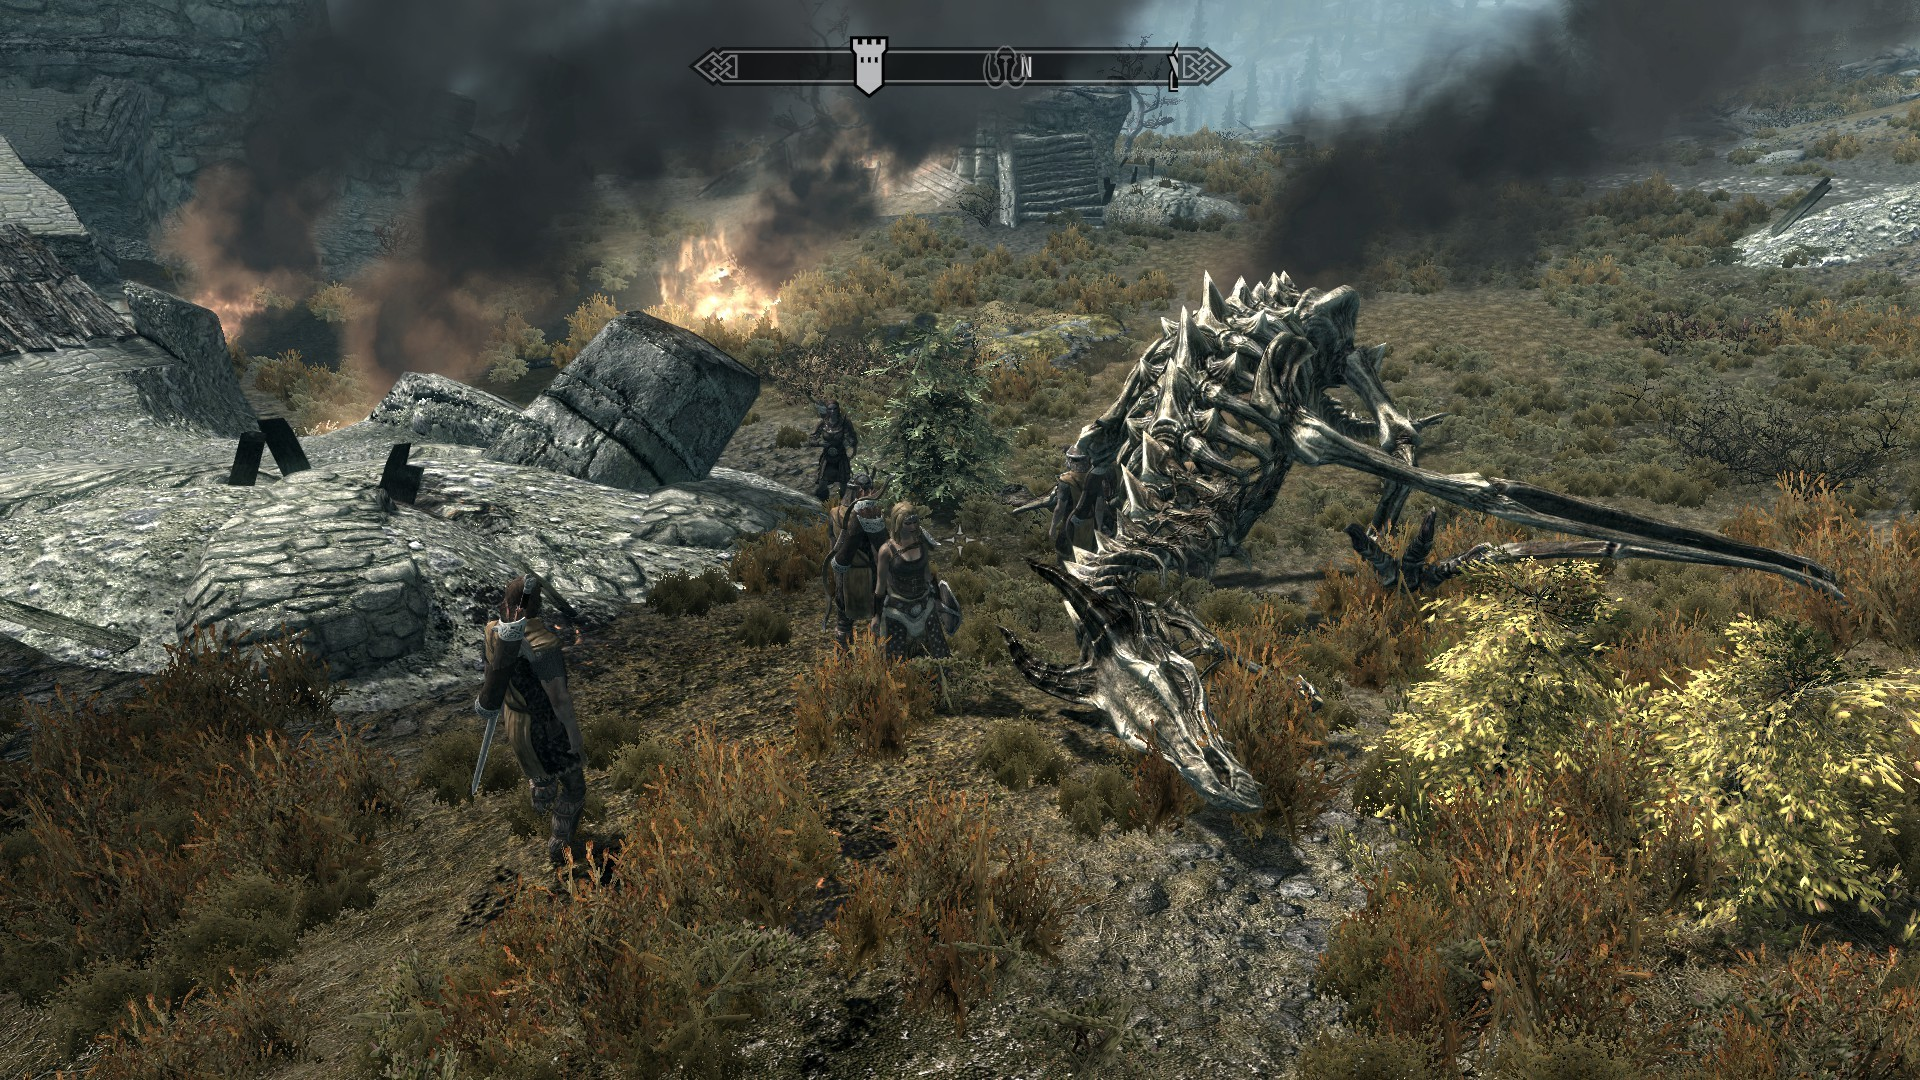 First Dragon killed in Skyrim